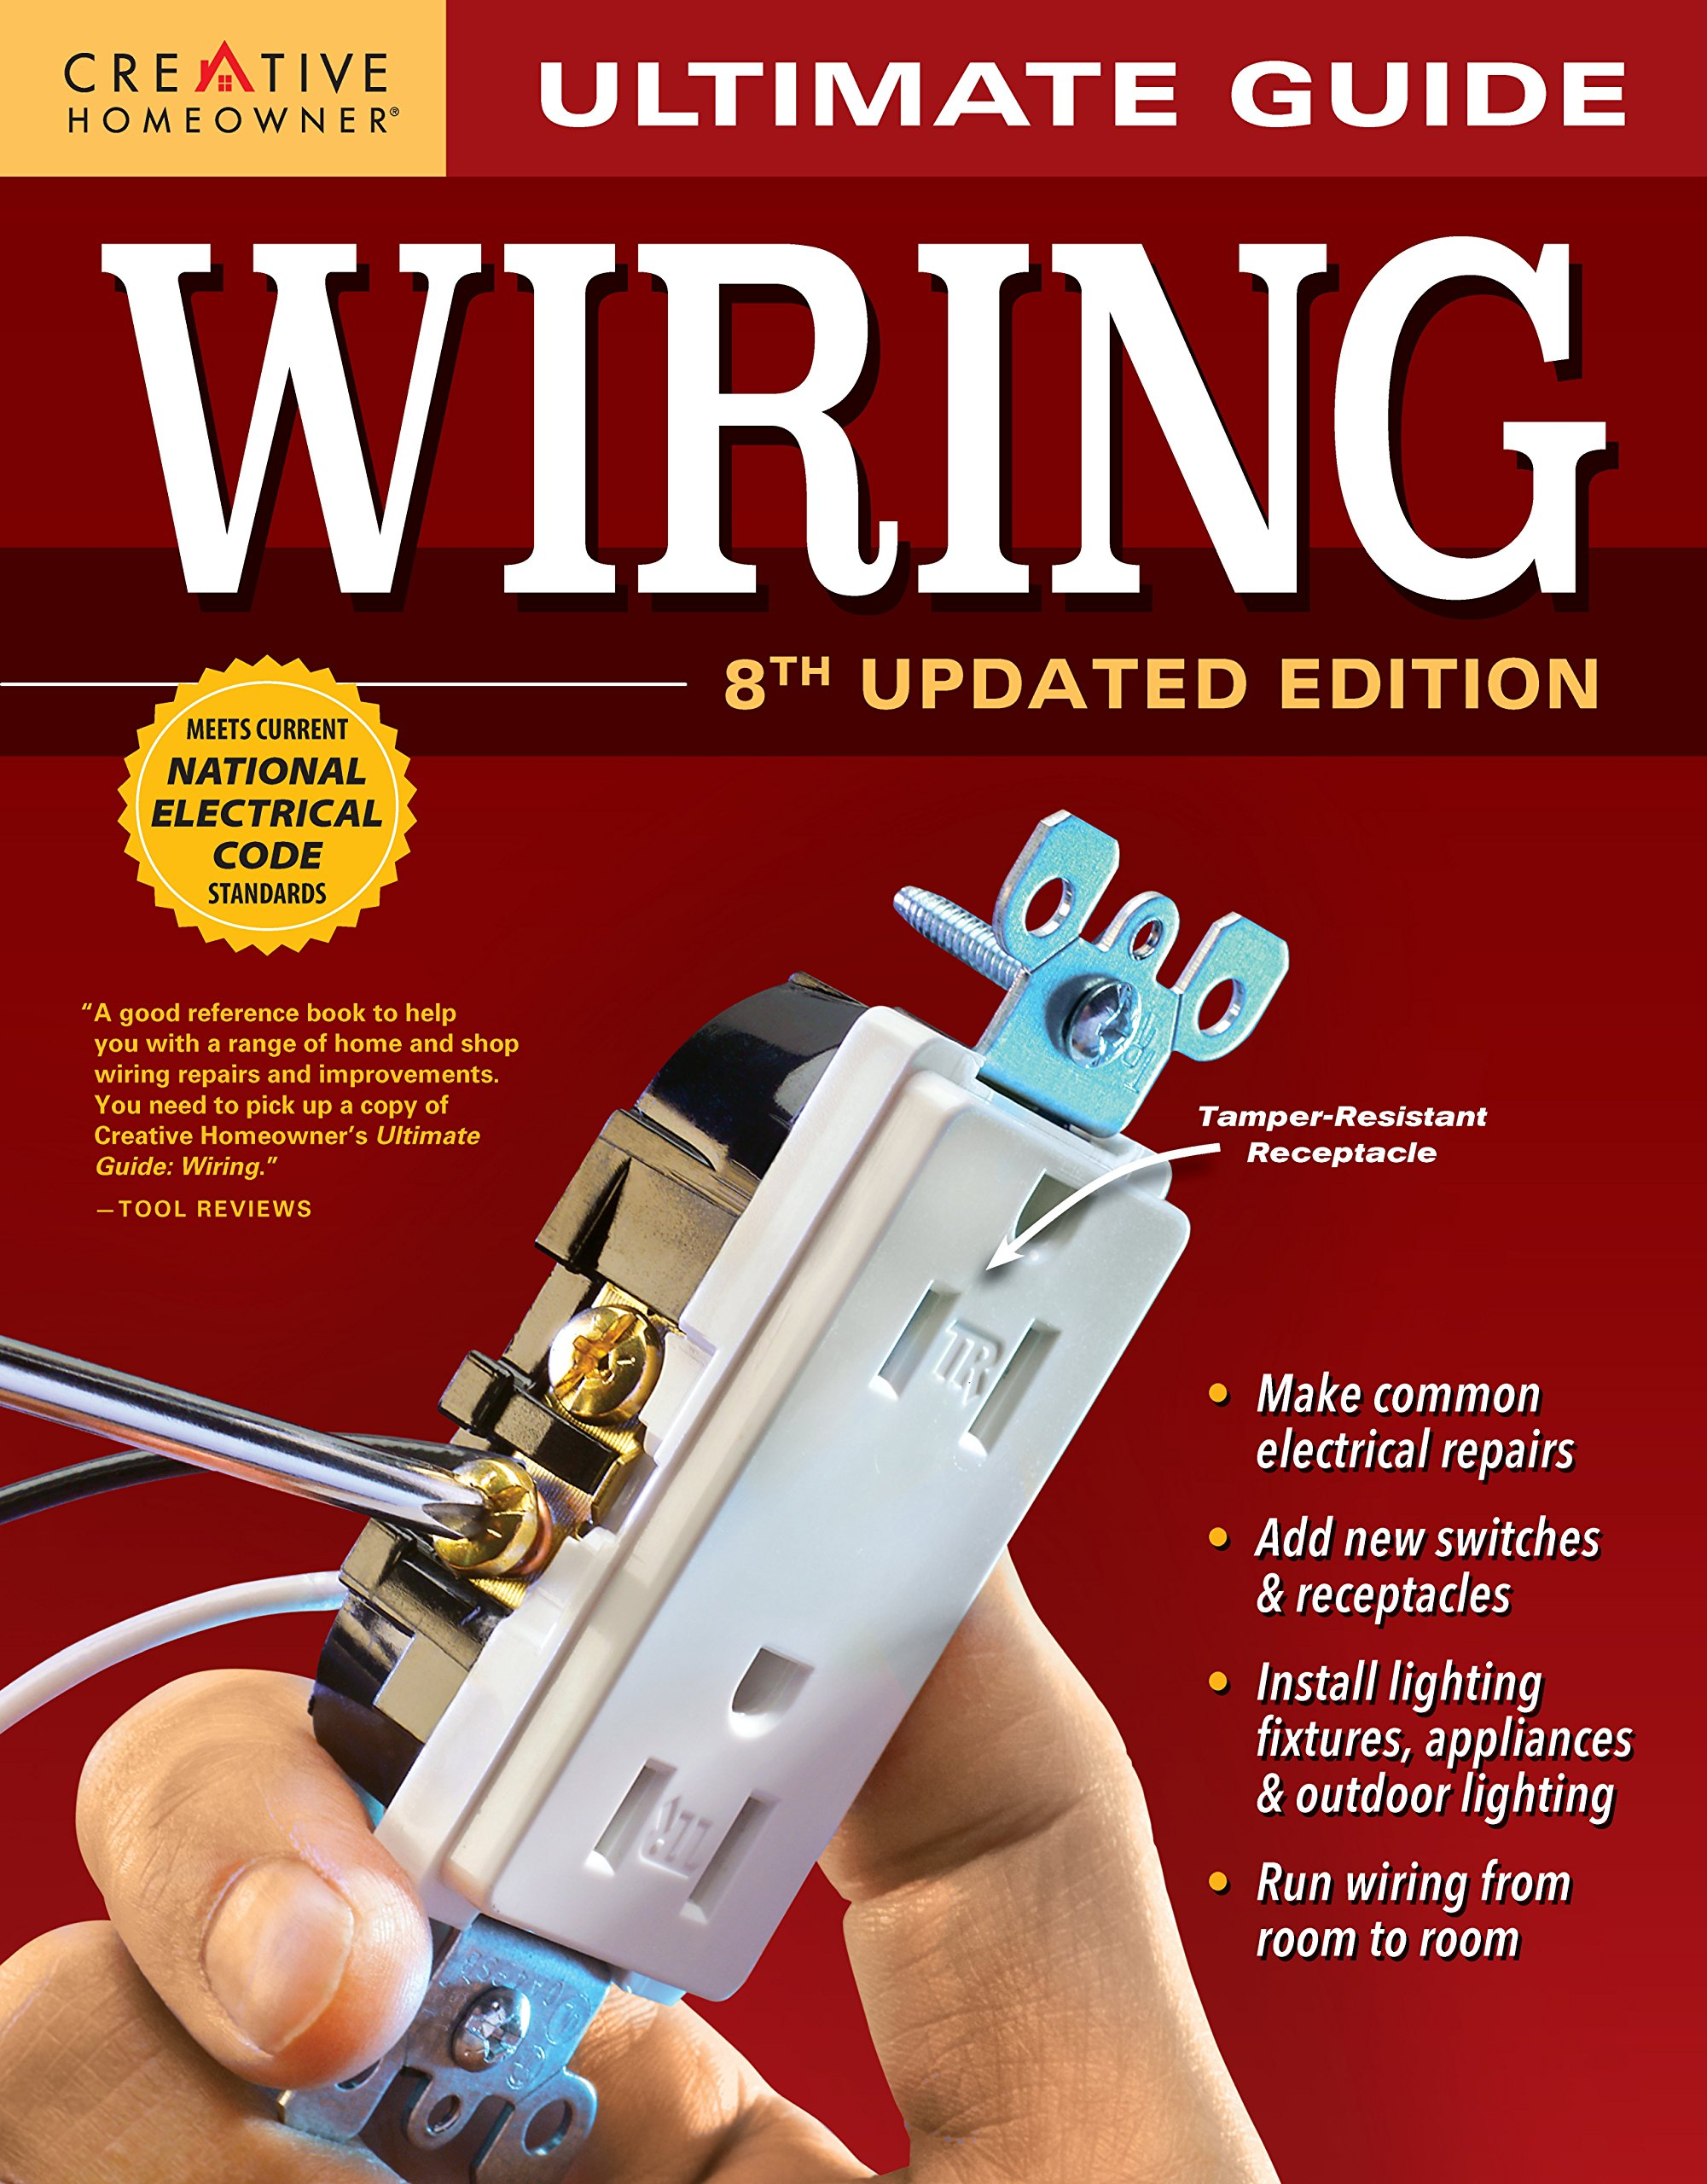 Ultimate Guide Wiring 8th Updated Edition Creative Homeowner Diy House Diagram India Home Electrical Installations Repairs From New Switches To Indoor Outdoor Lighting